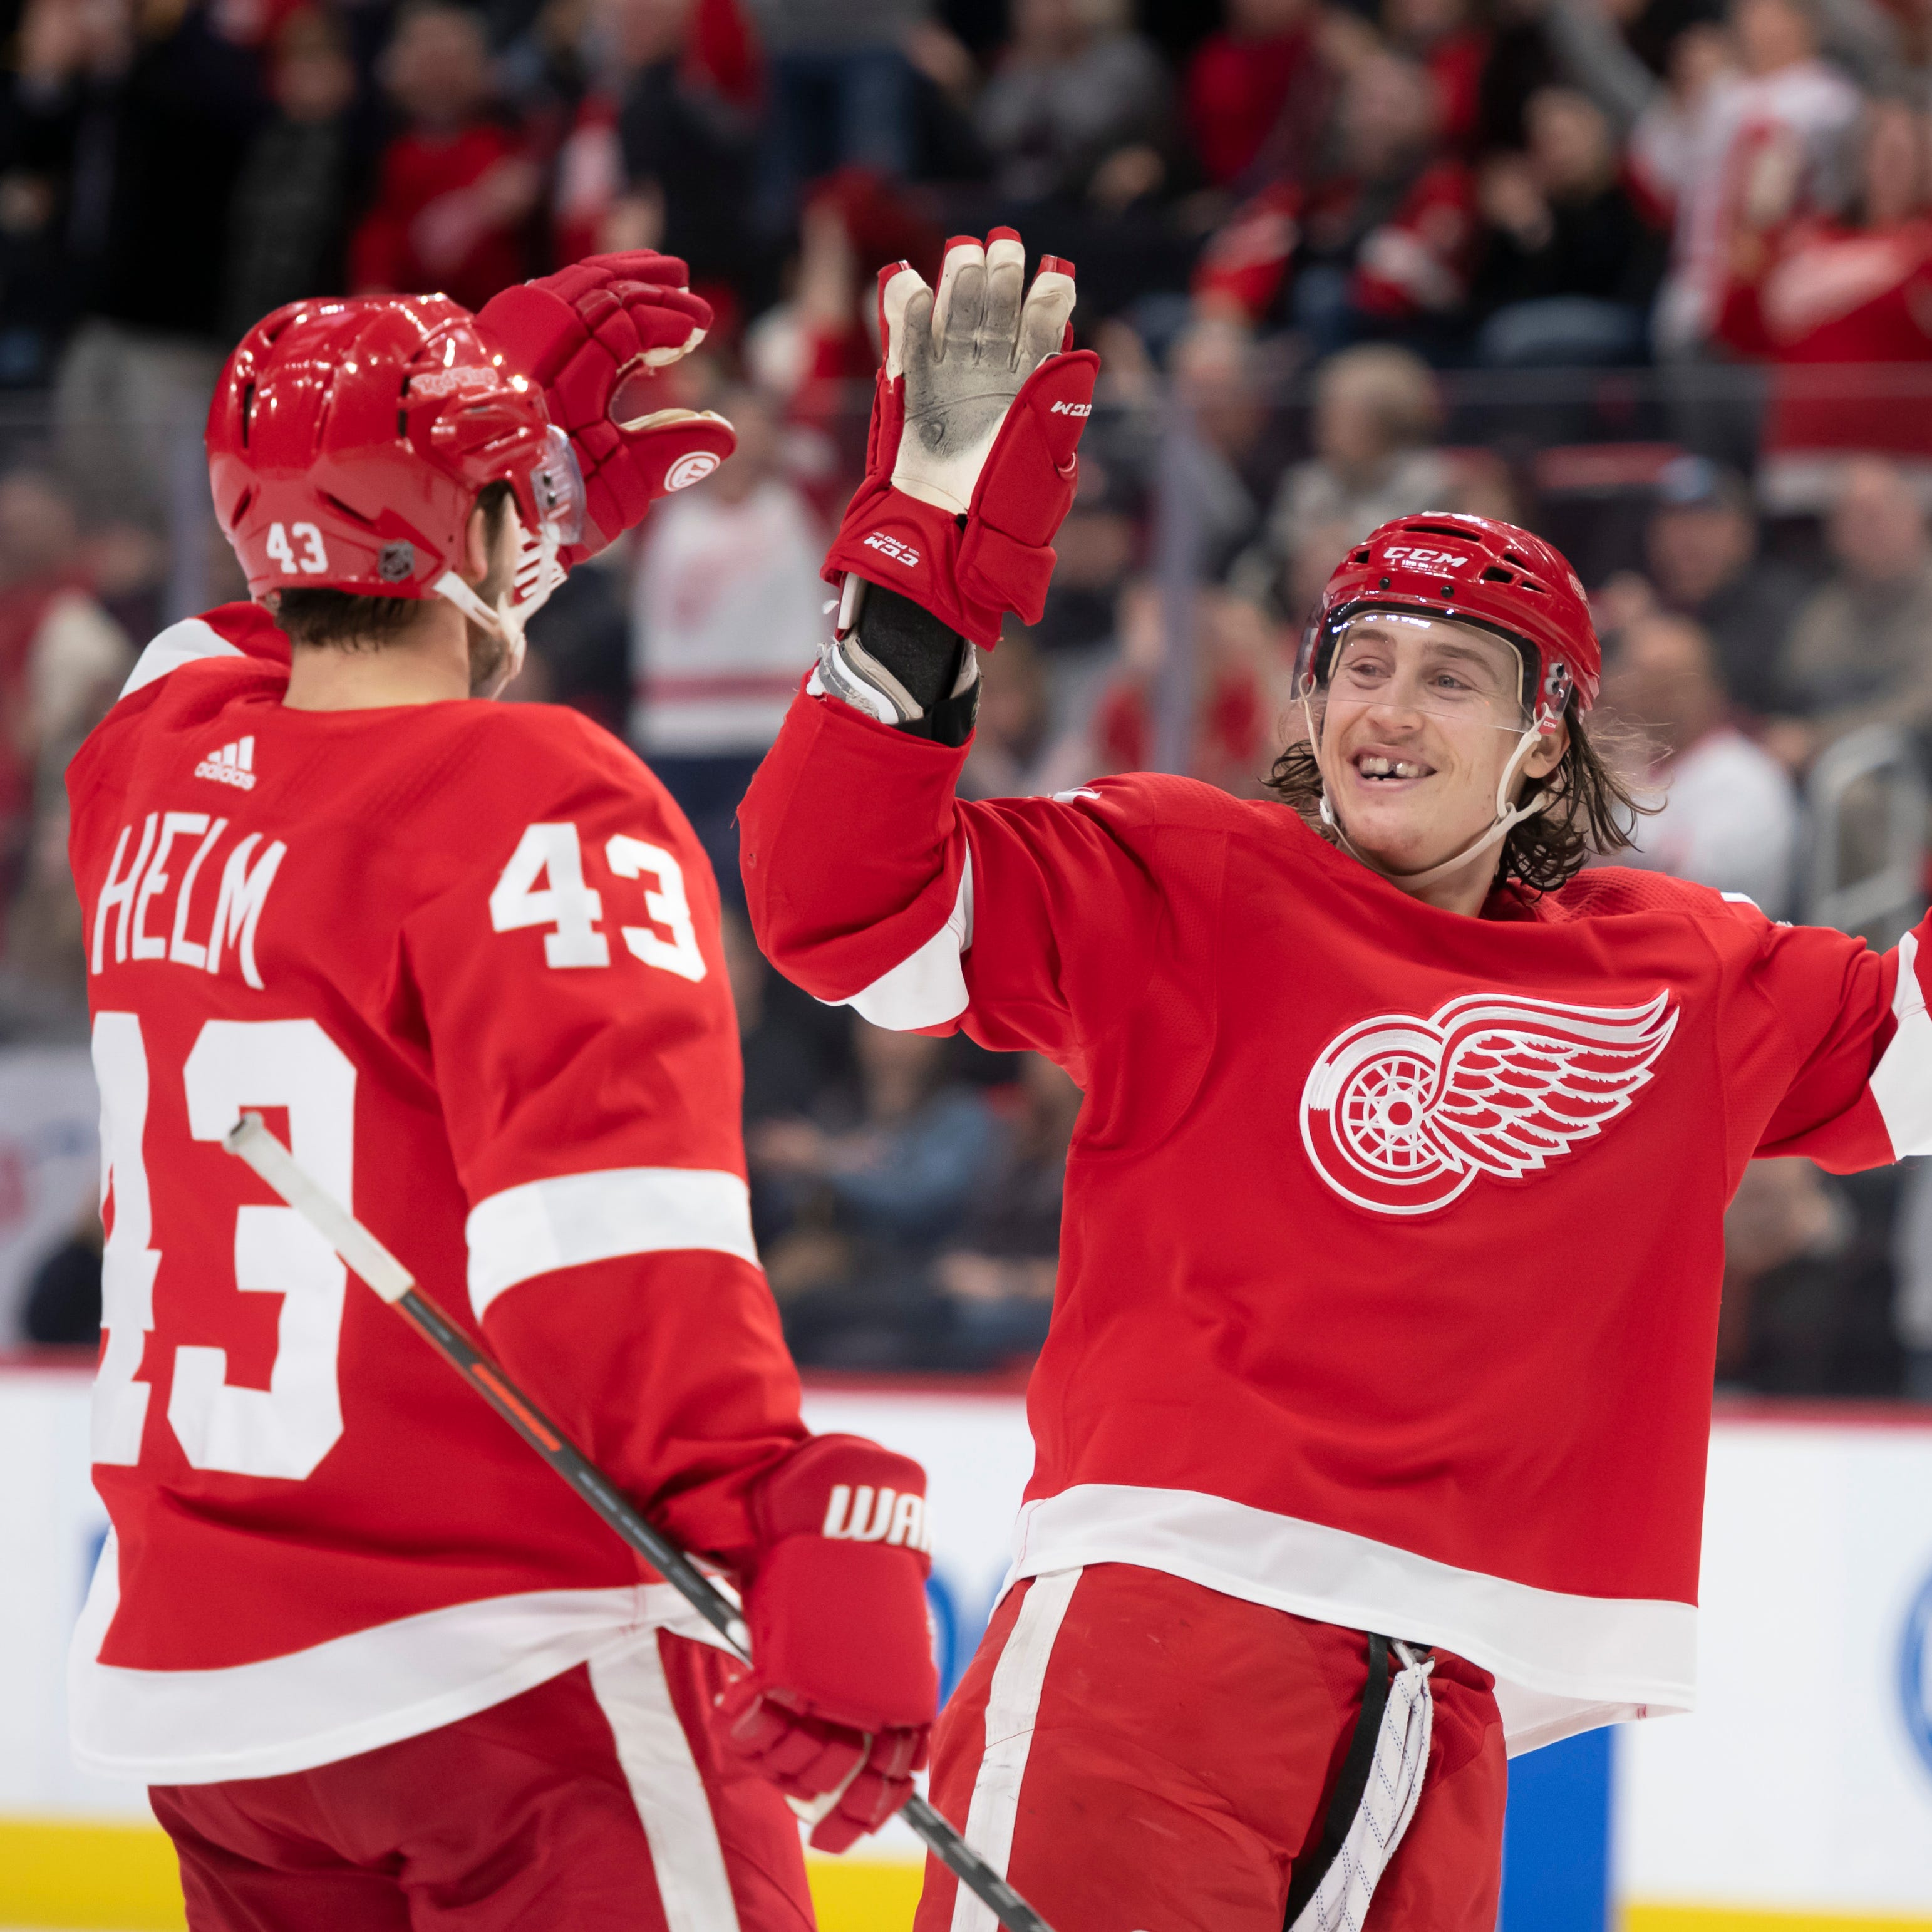 'Grab those points': Wings use late surge to down Ducks